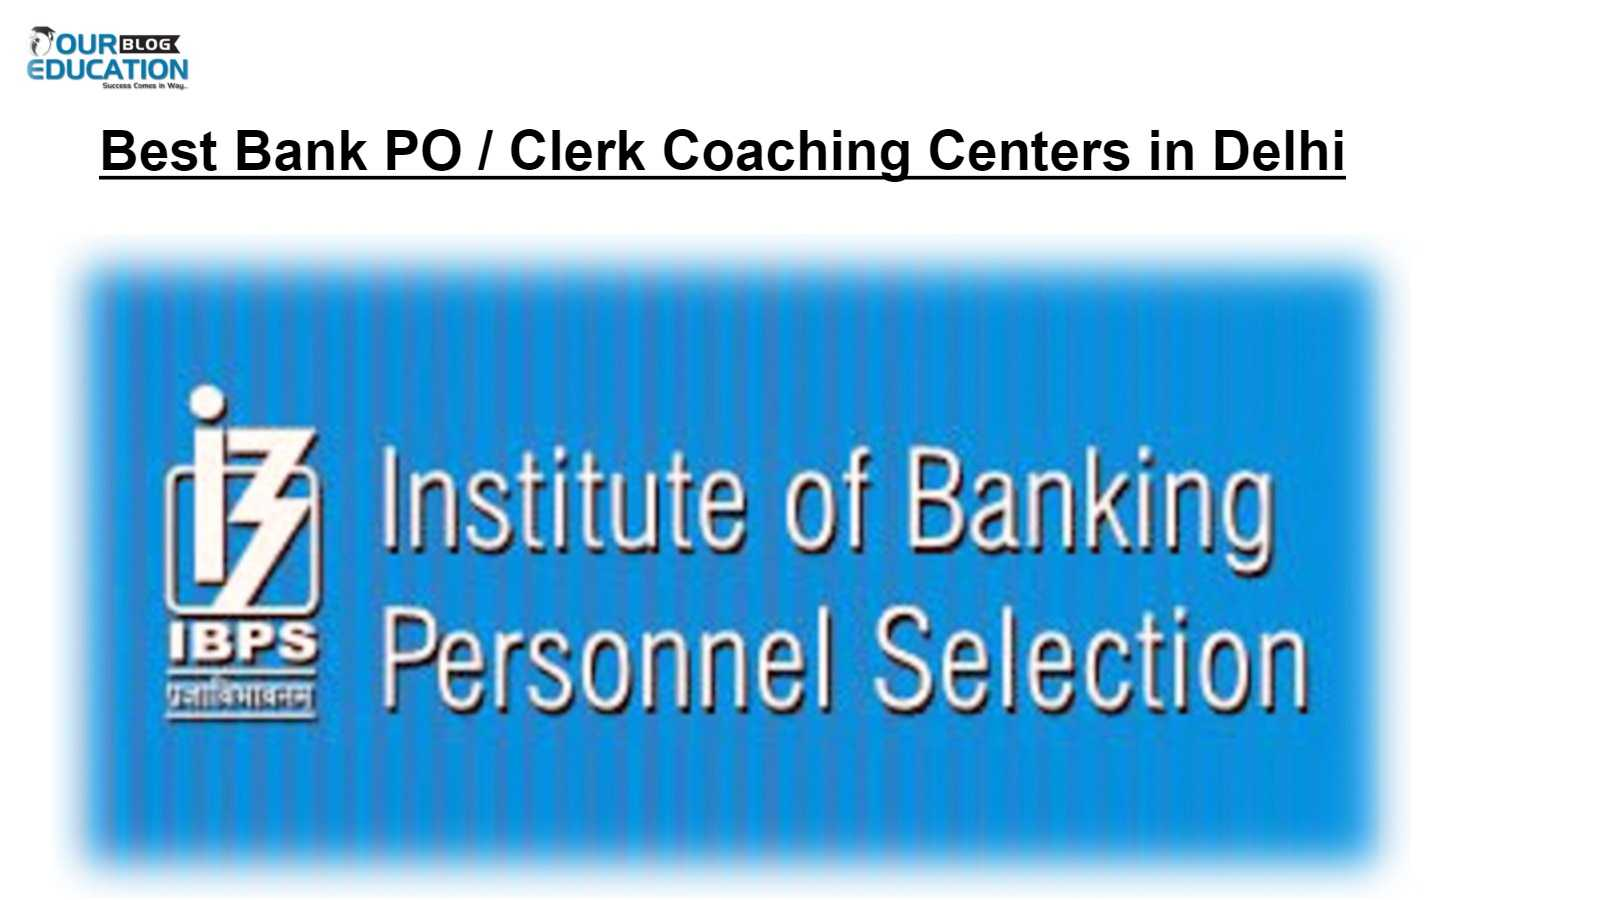 Best 10 Bank PO Coaching Institutes in Delhi India - Prepare